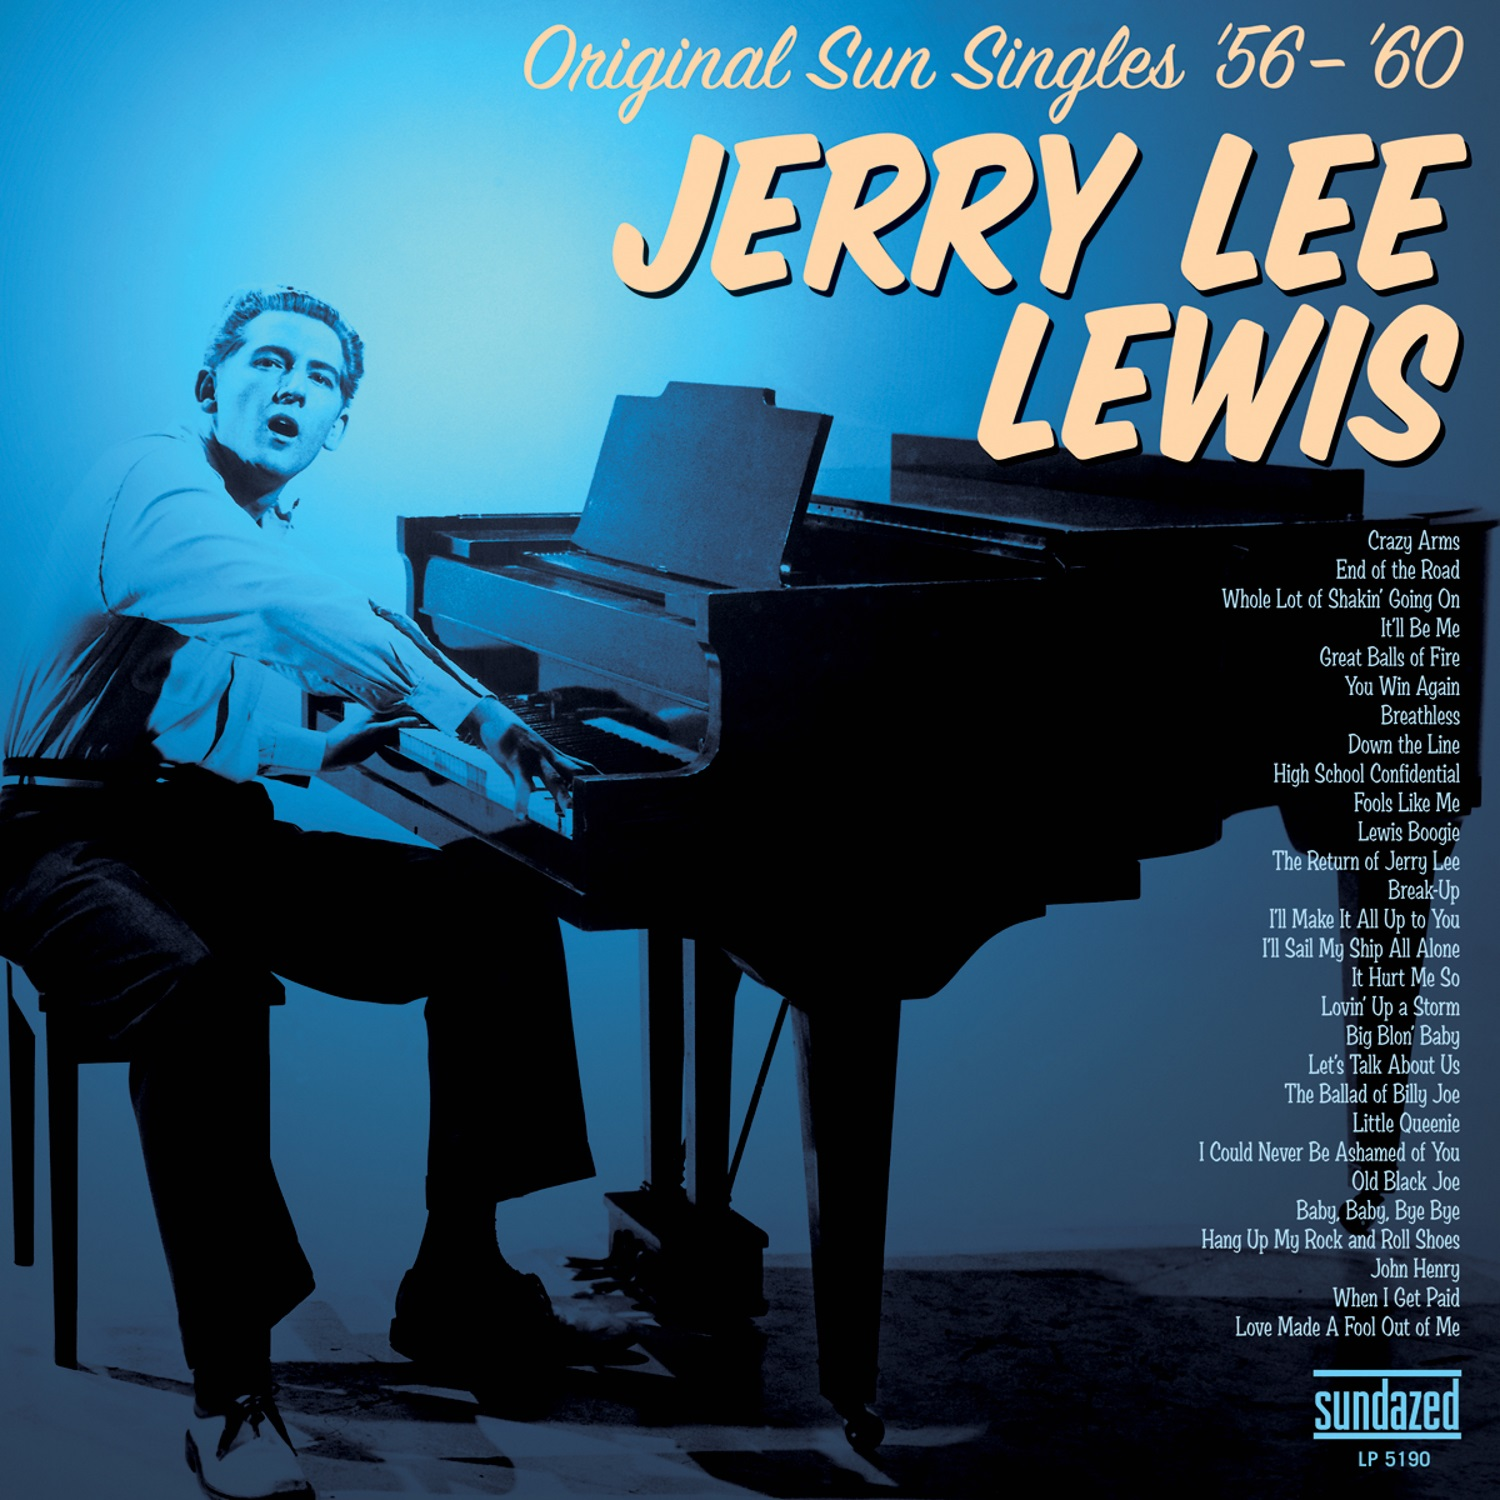 Lewis, Jerry Lee - Original Sun Singles 56 - 60 CD